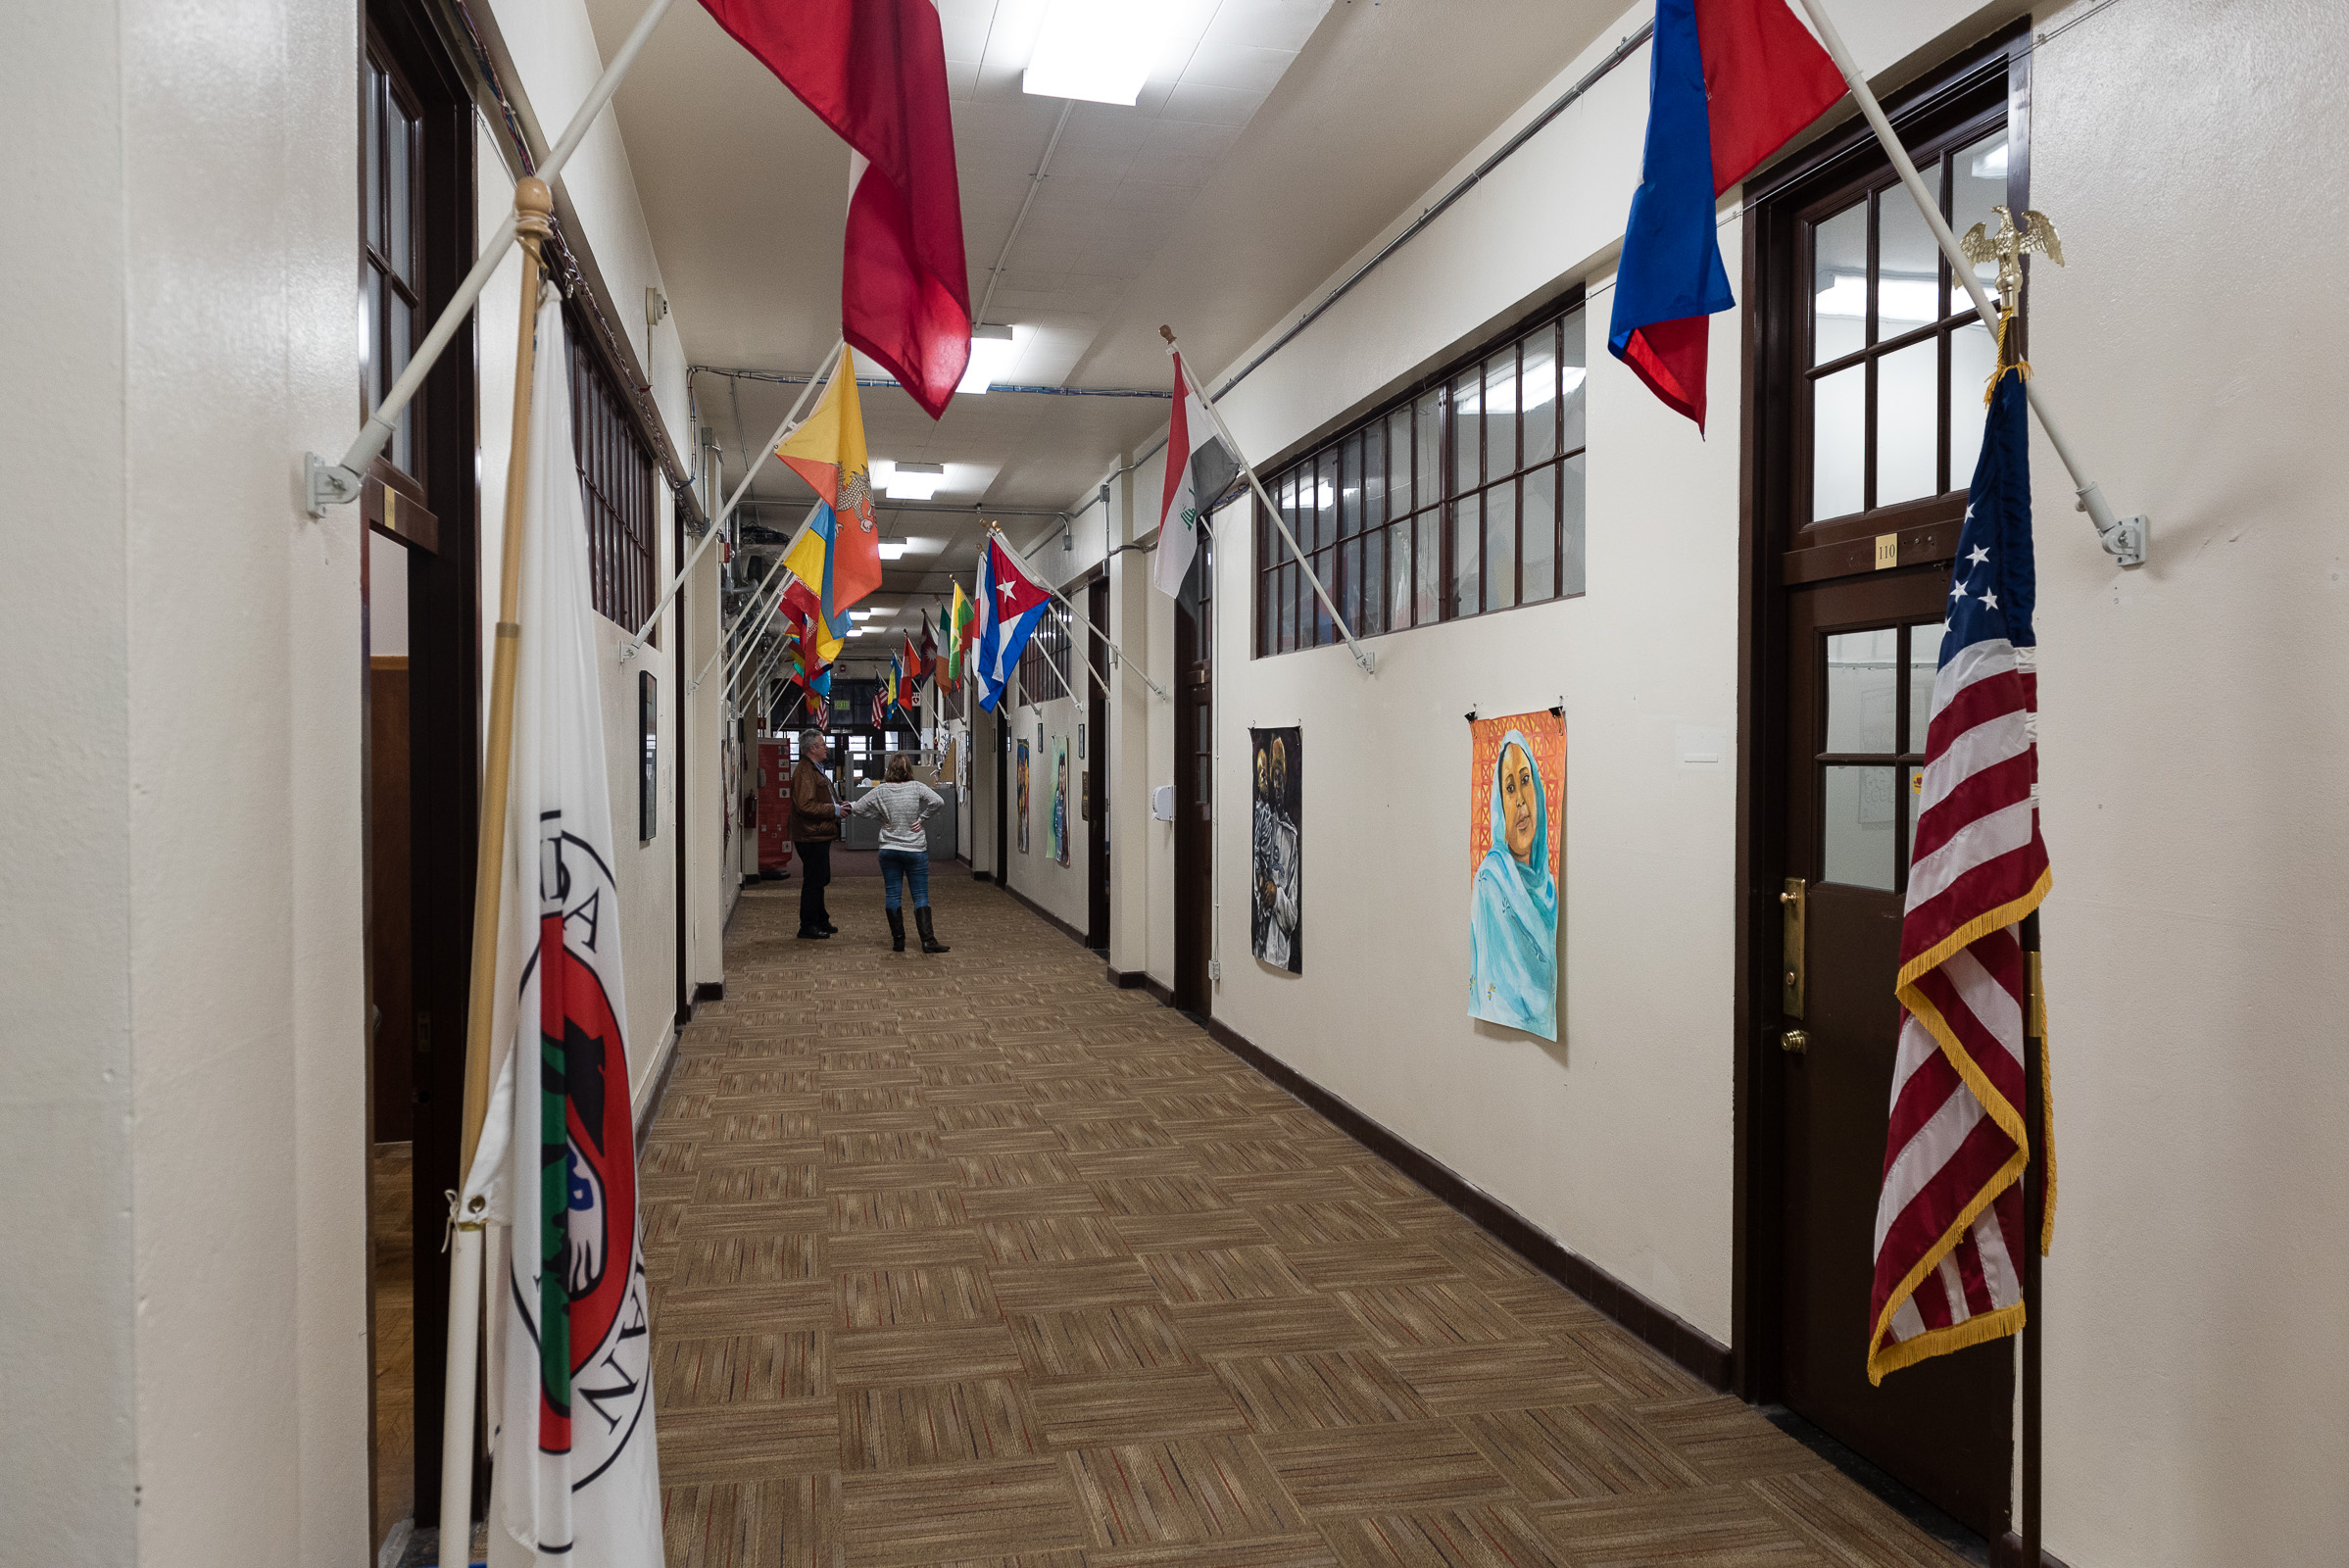 The Mohawk Valley Resource Center for Refugees has helped settle over 35,000 refugees since it was founded in 1981. Joseph Ryder